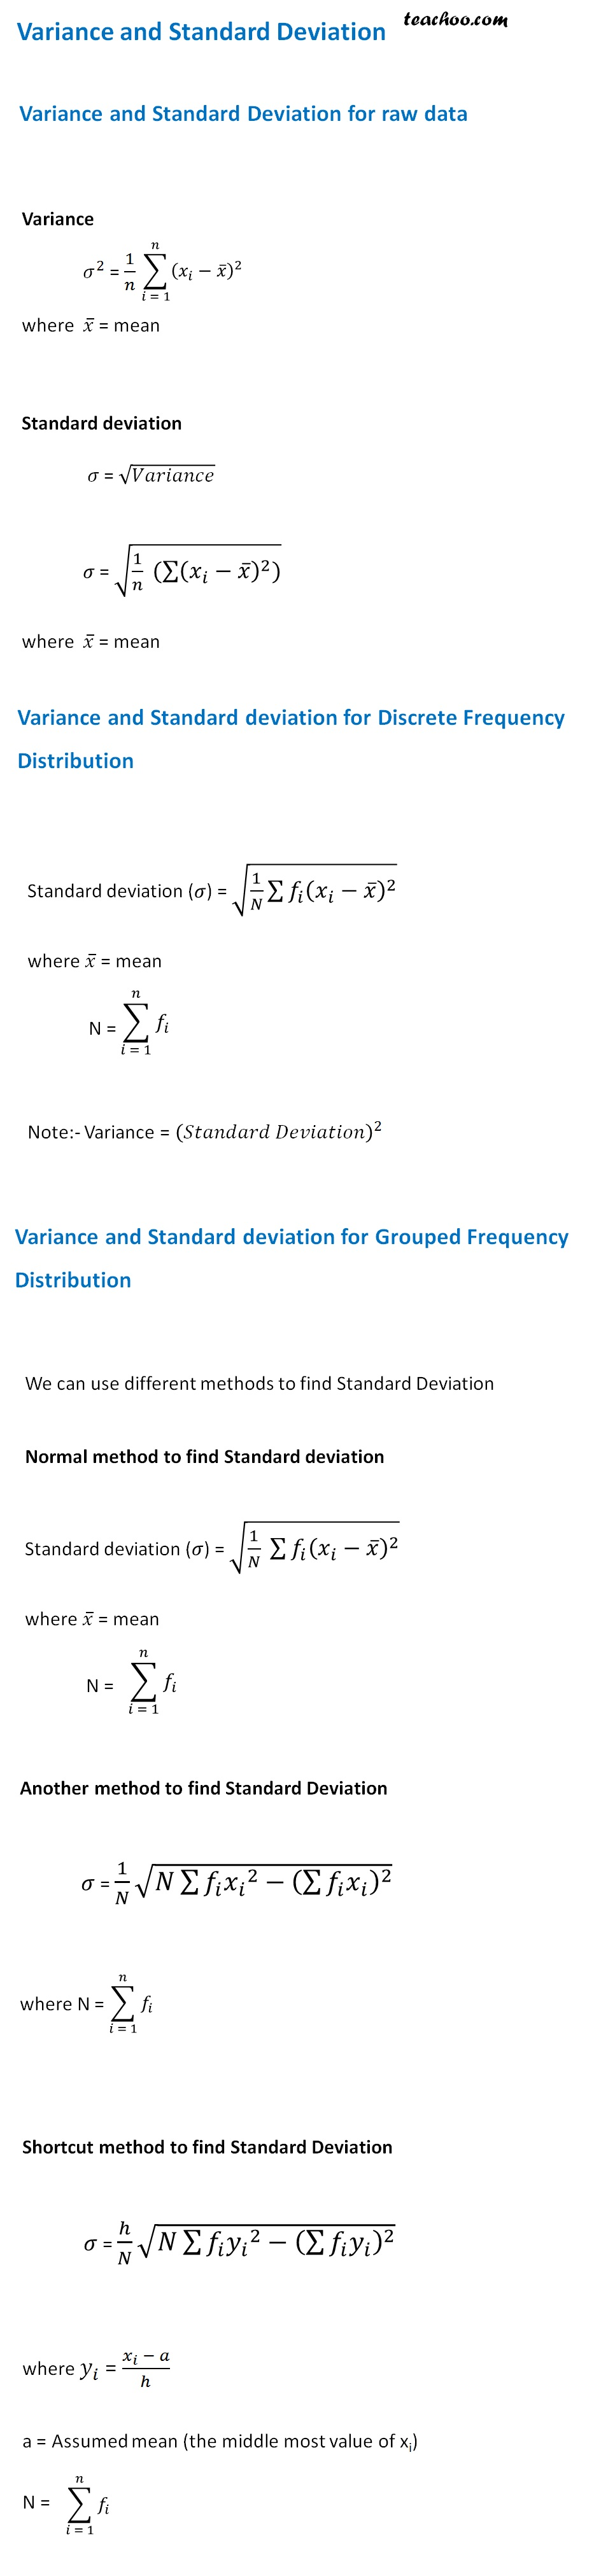 Variance and Standard Deviation.jpg